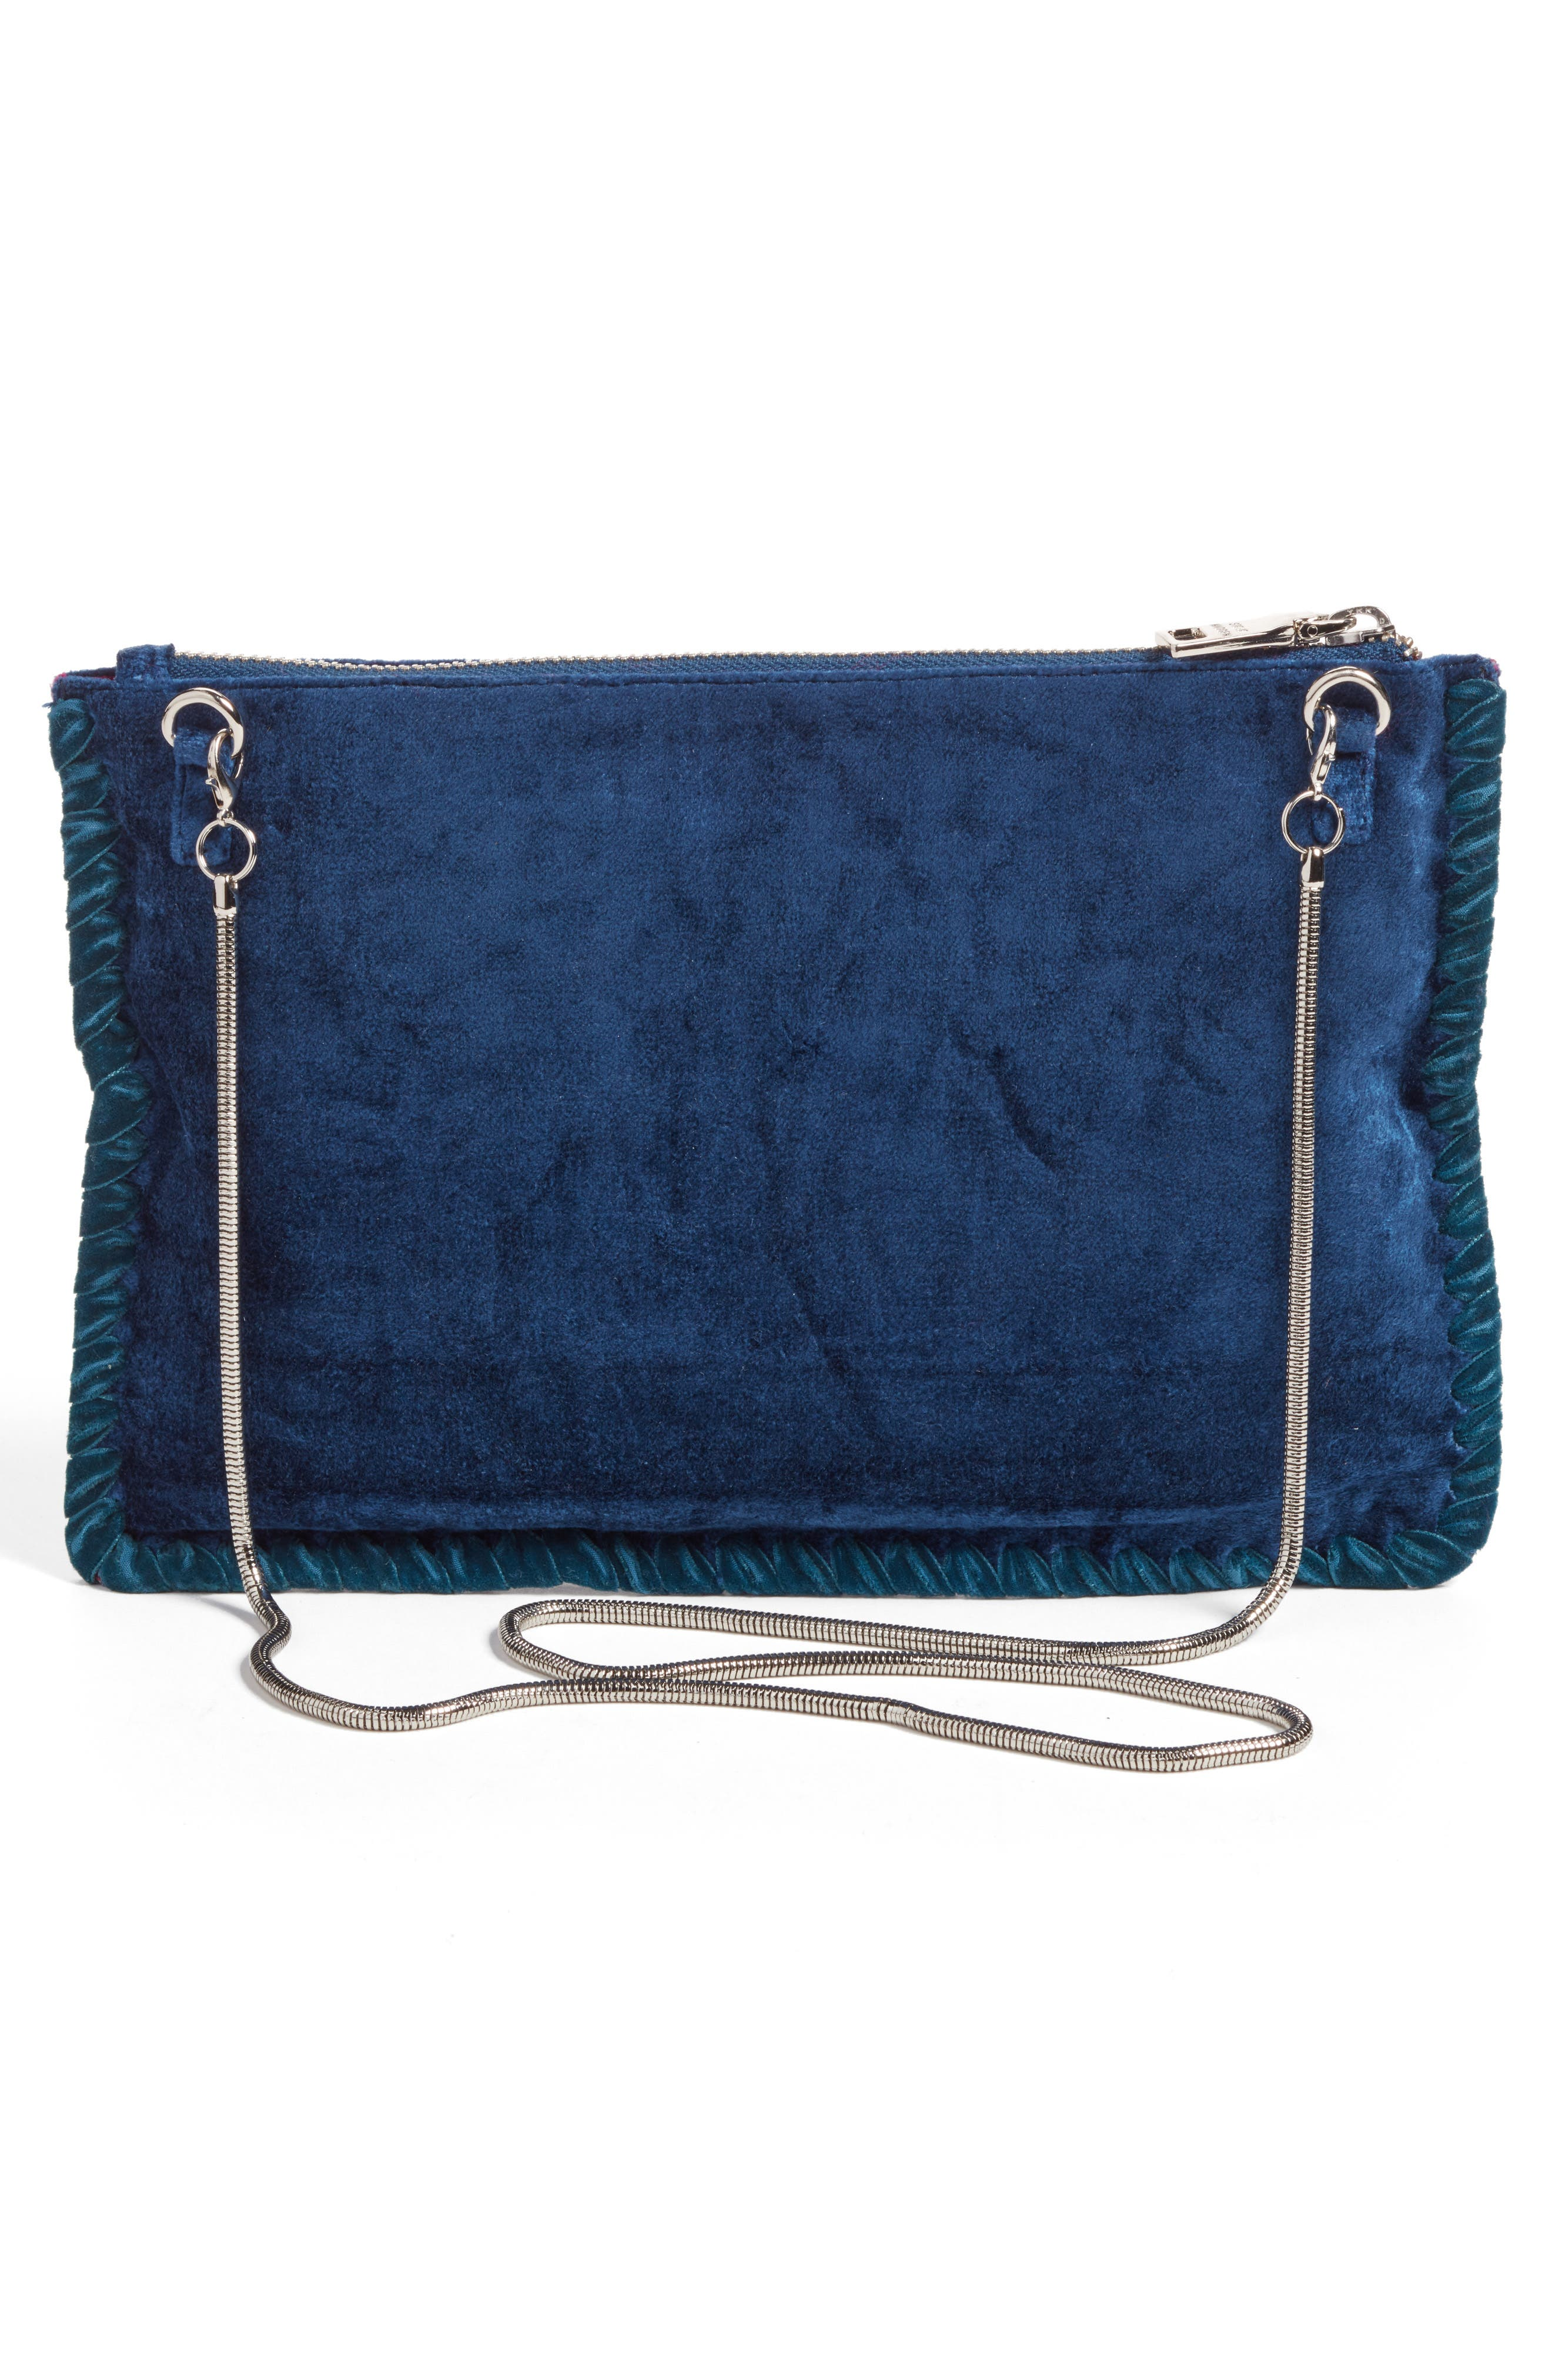 Embellished Clutch,                             Alternate thumbnail 3, color,